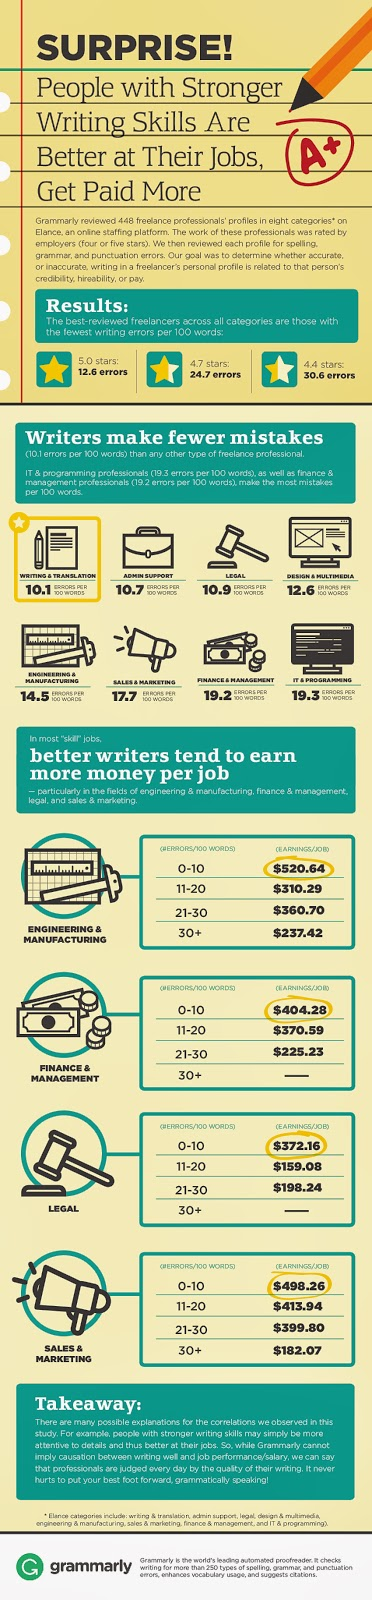 Teens who write well get better paying jobs